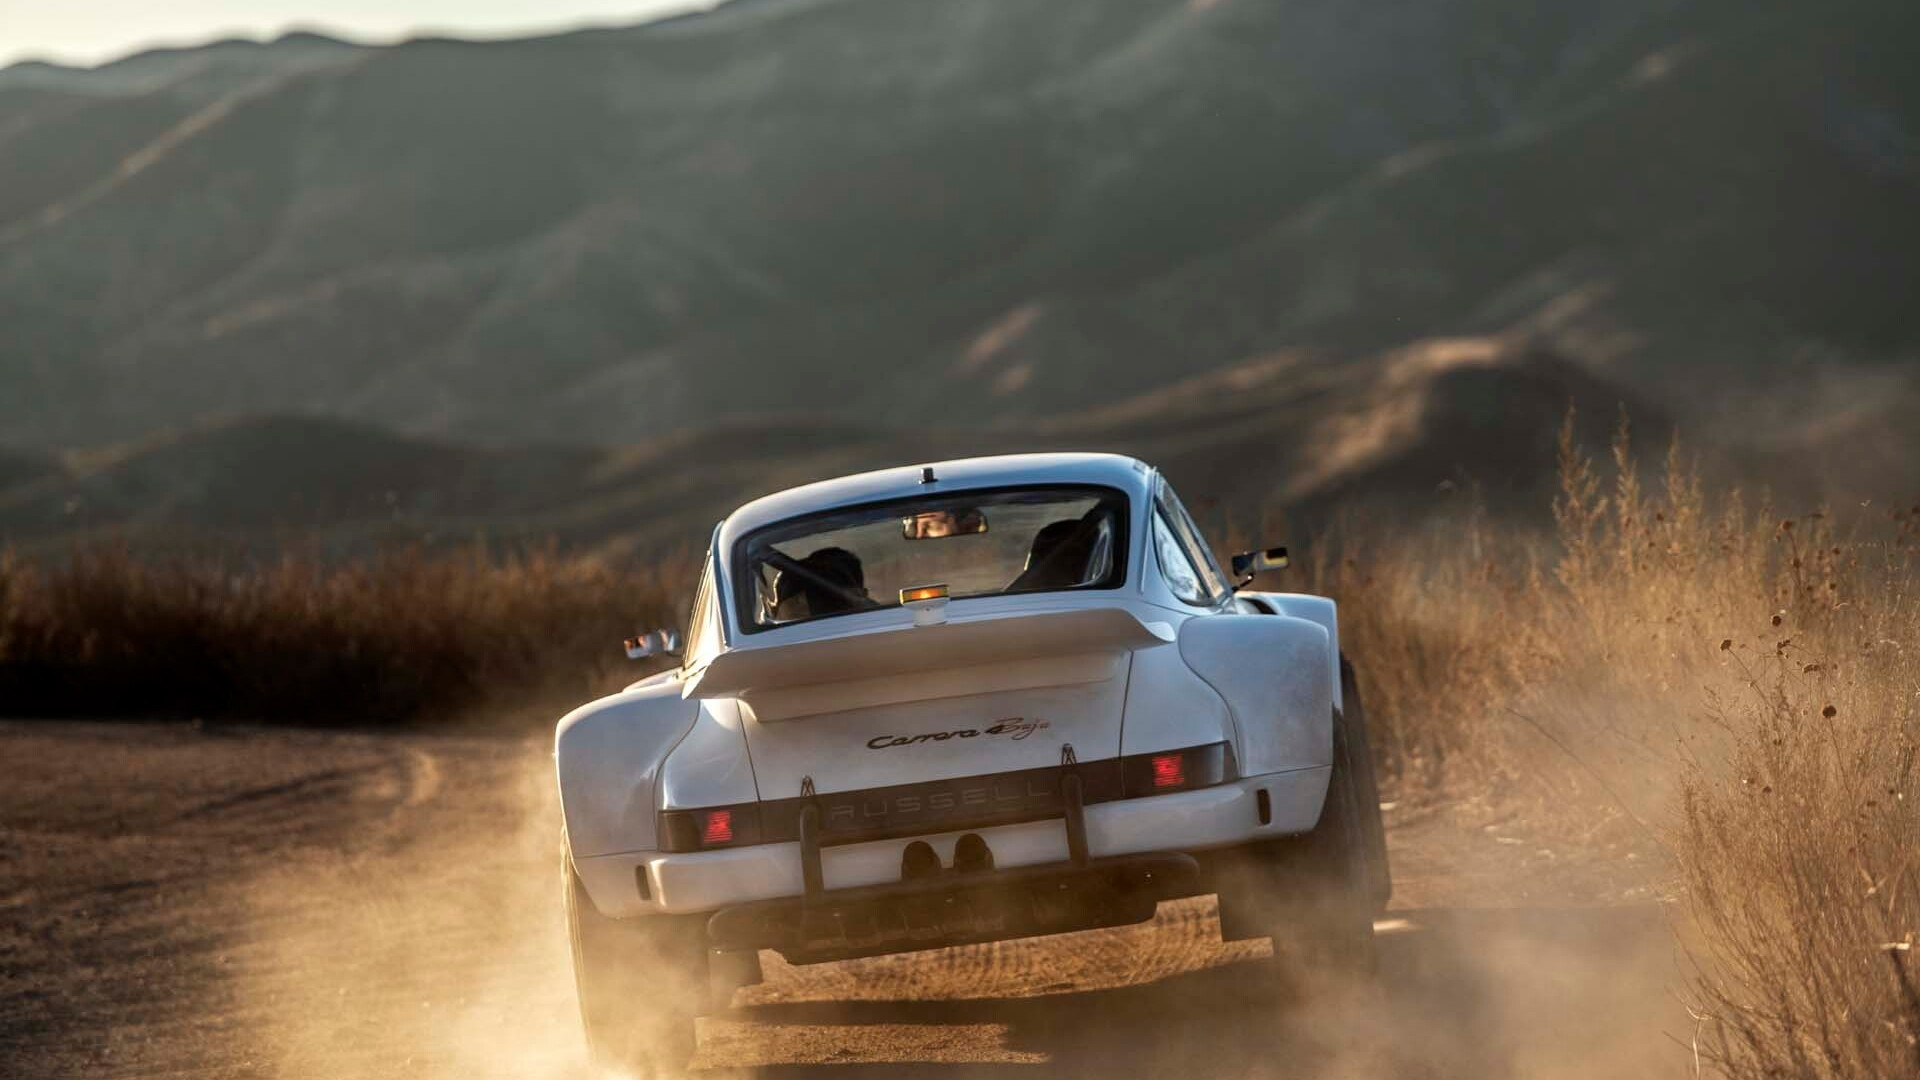 Russell Built Fabrication Baja Porsche 911